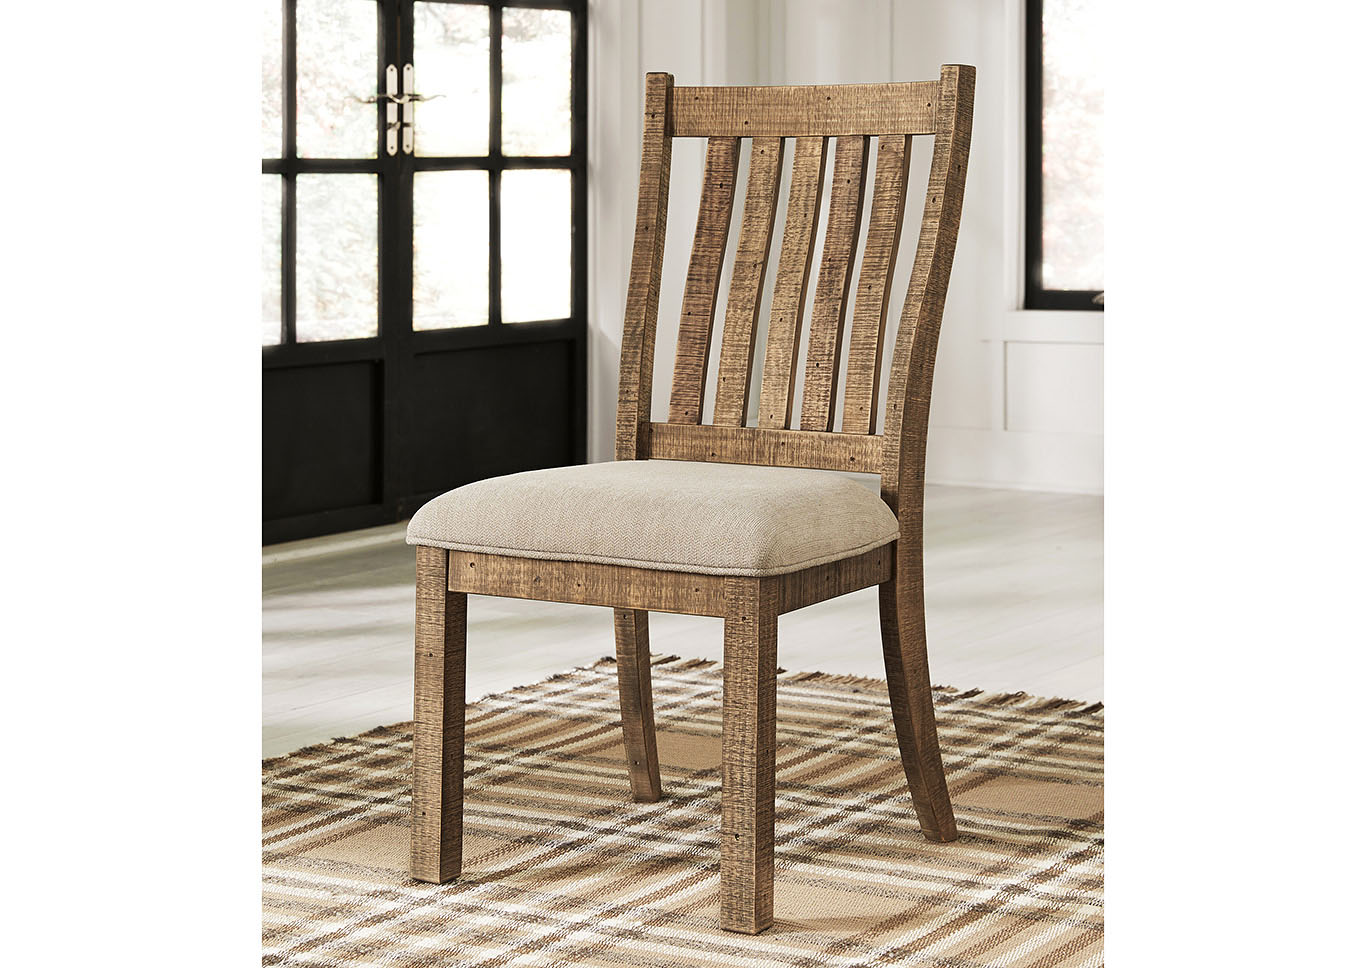 Grindleburg Light Brown Upholstered Side Chair (Set of 2),Signature Design By Ashley